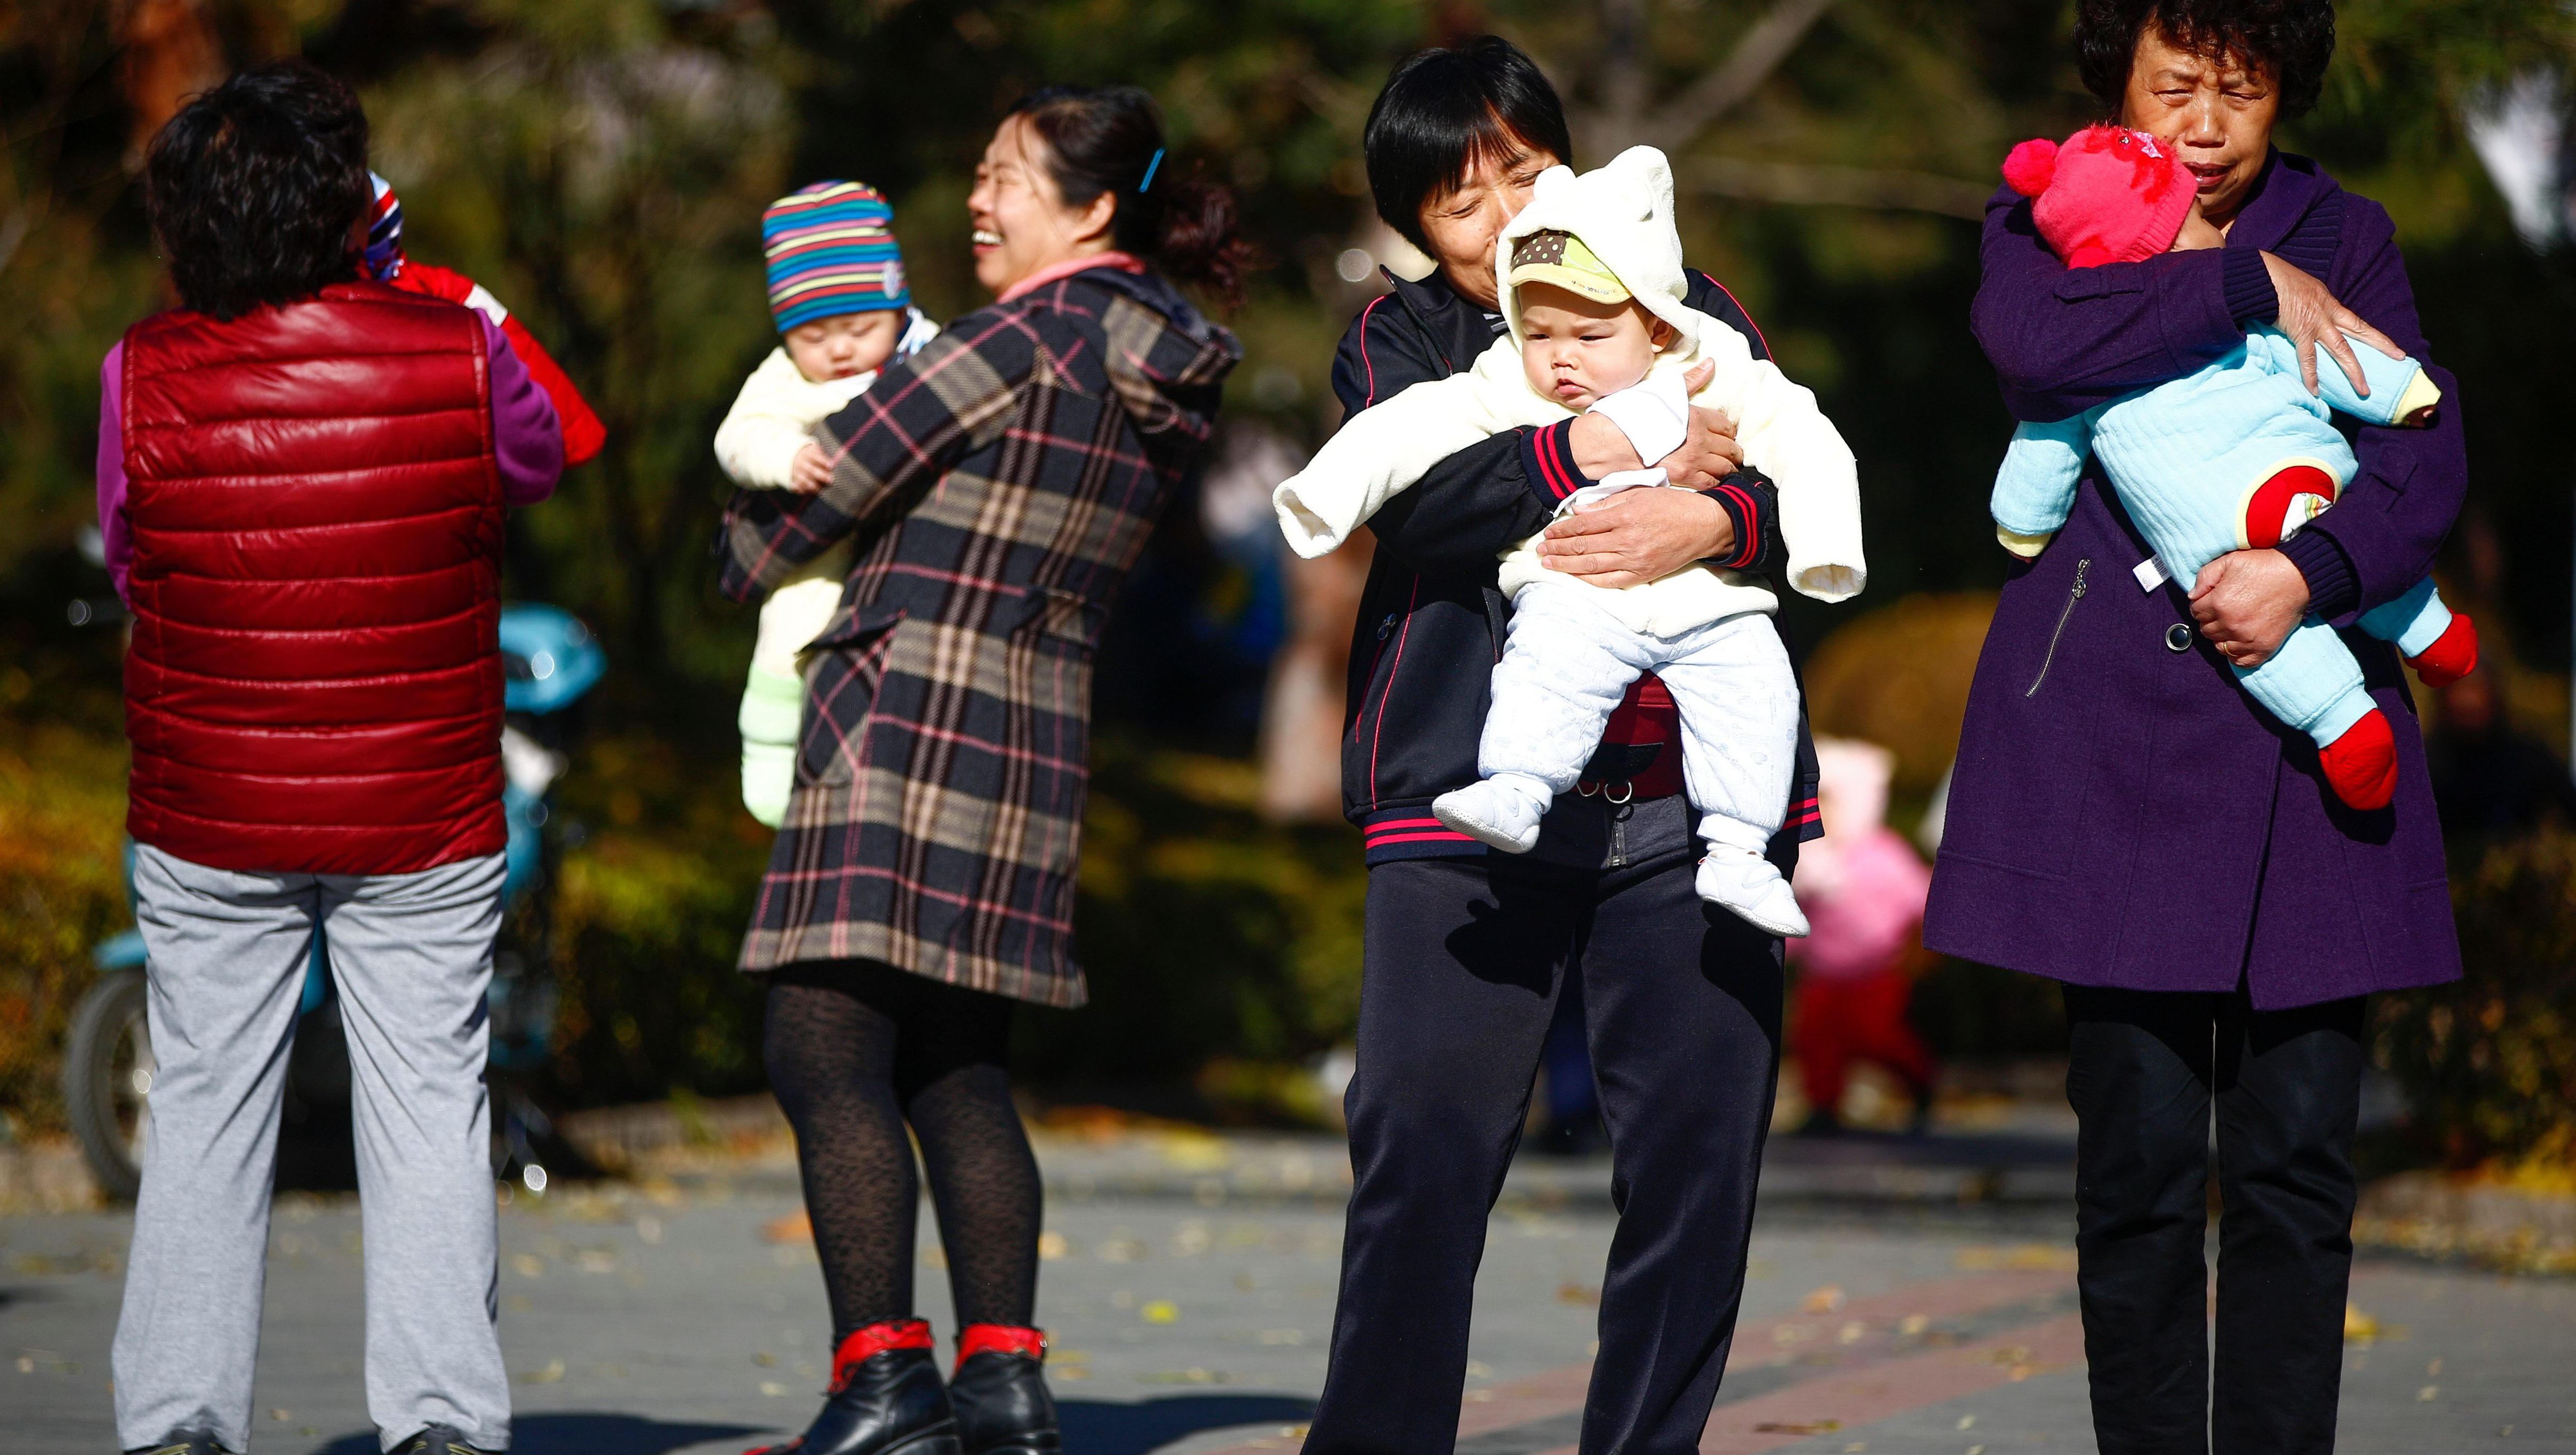 A file photo dated 25 November 2013 showing parents and babies gathering at a park in Beijing, China. China is to abolish its one-child policy, the official Xinhua news agency reported 29 October 2015 from a meeting of the Central Committee of the Communist Party in Beijing. EPA/DIEGO AZUBEL